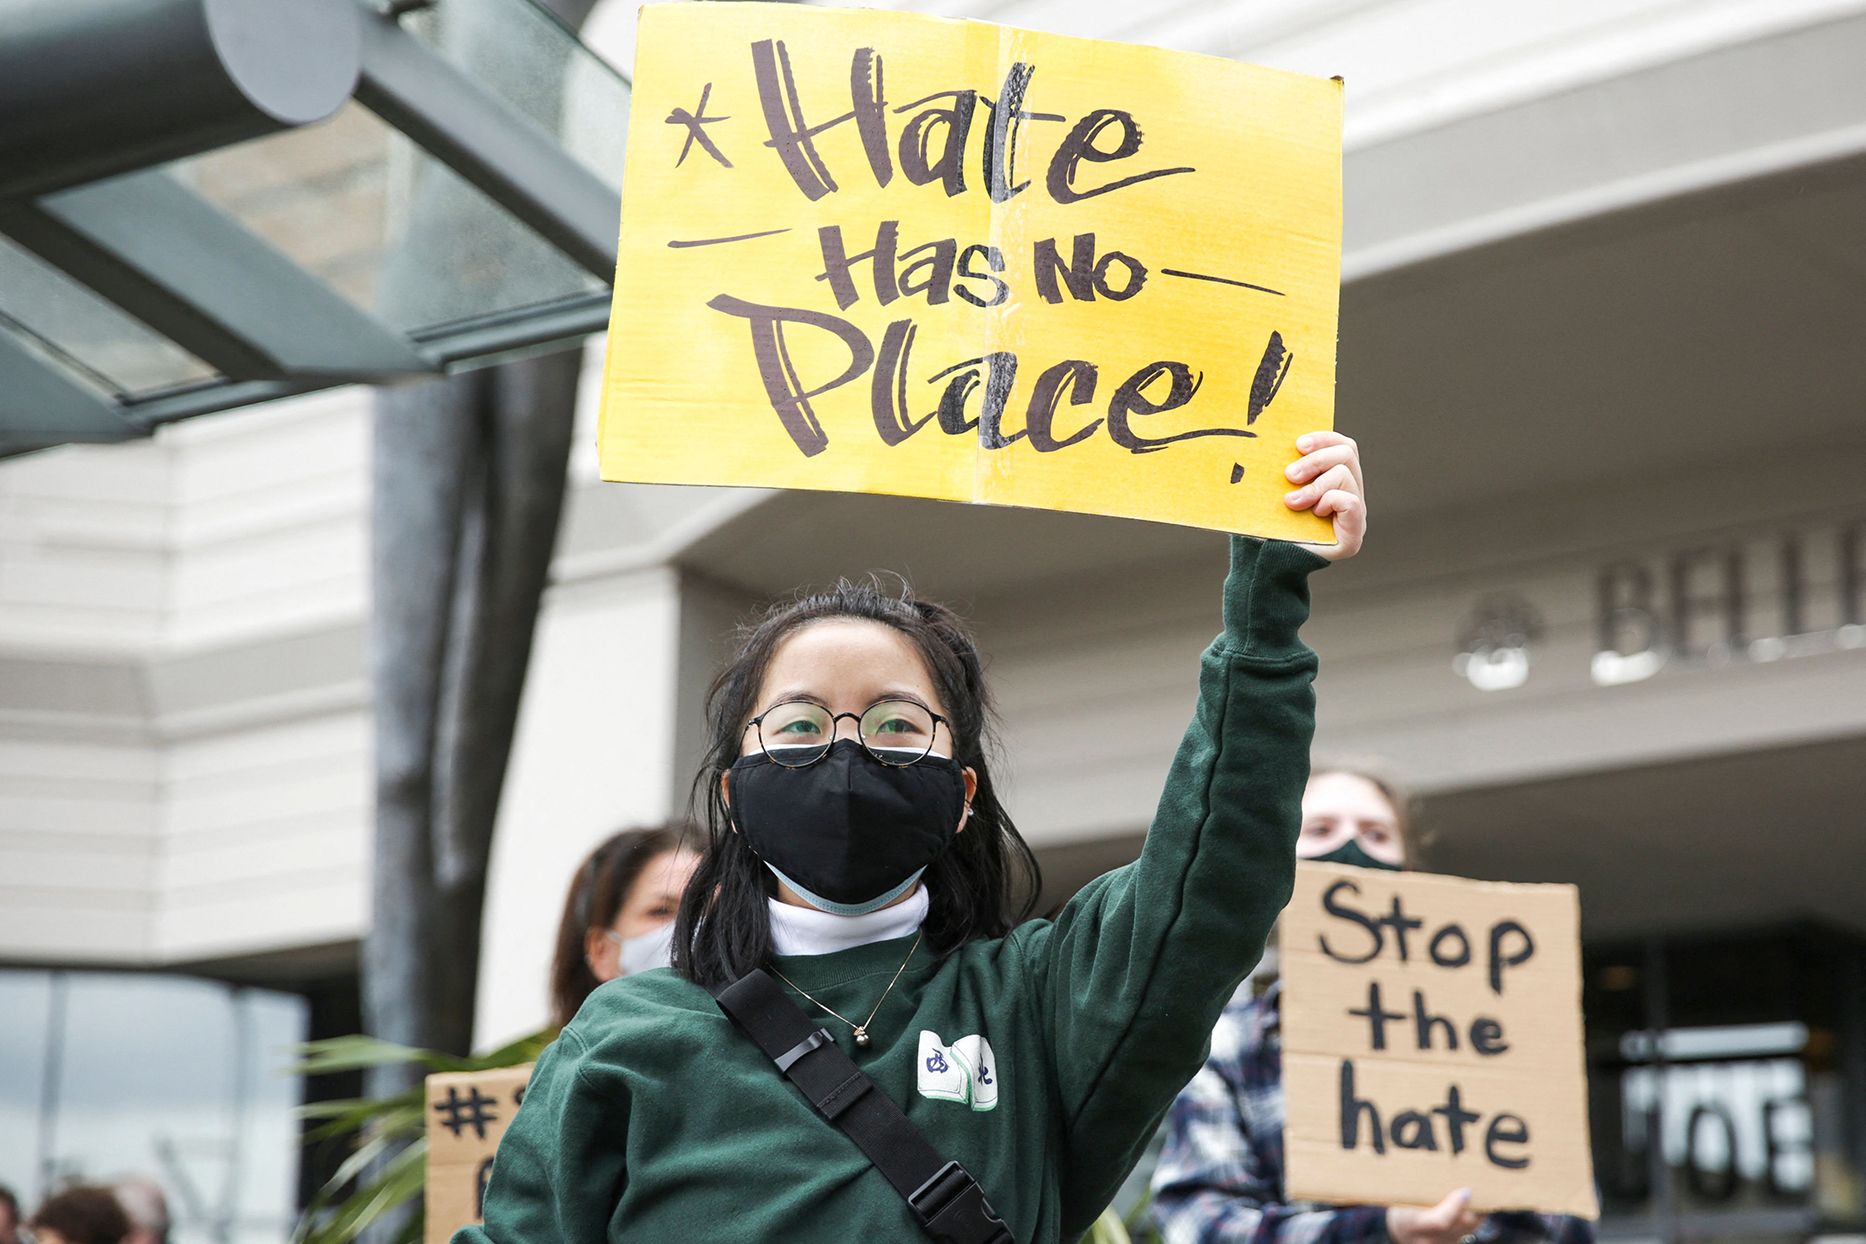 A woman protesting the violence against the AAPI community